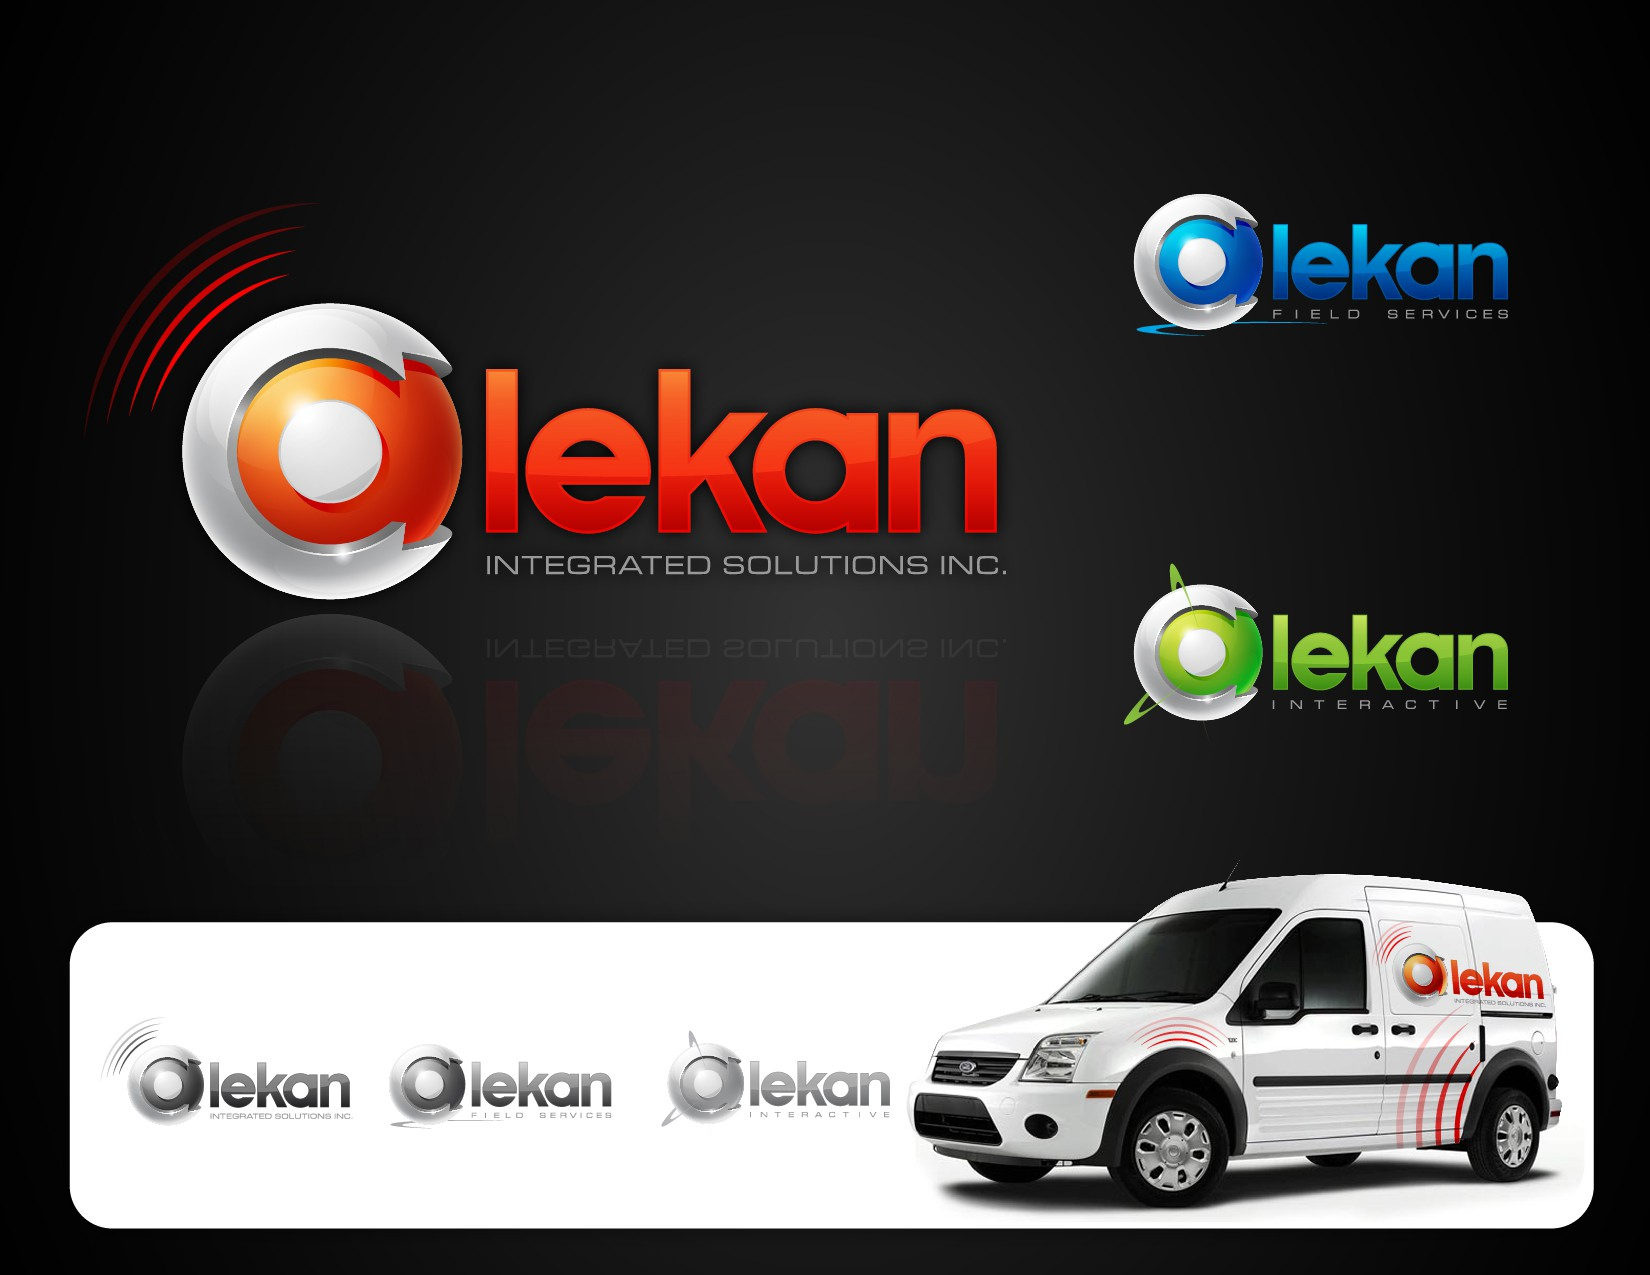 Help Alekan Integrated Solutions Inc. with a new logo